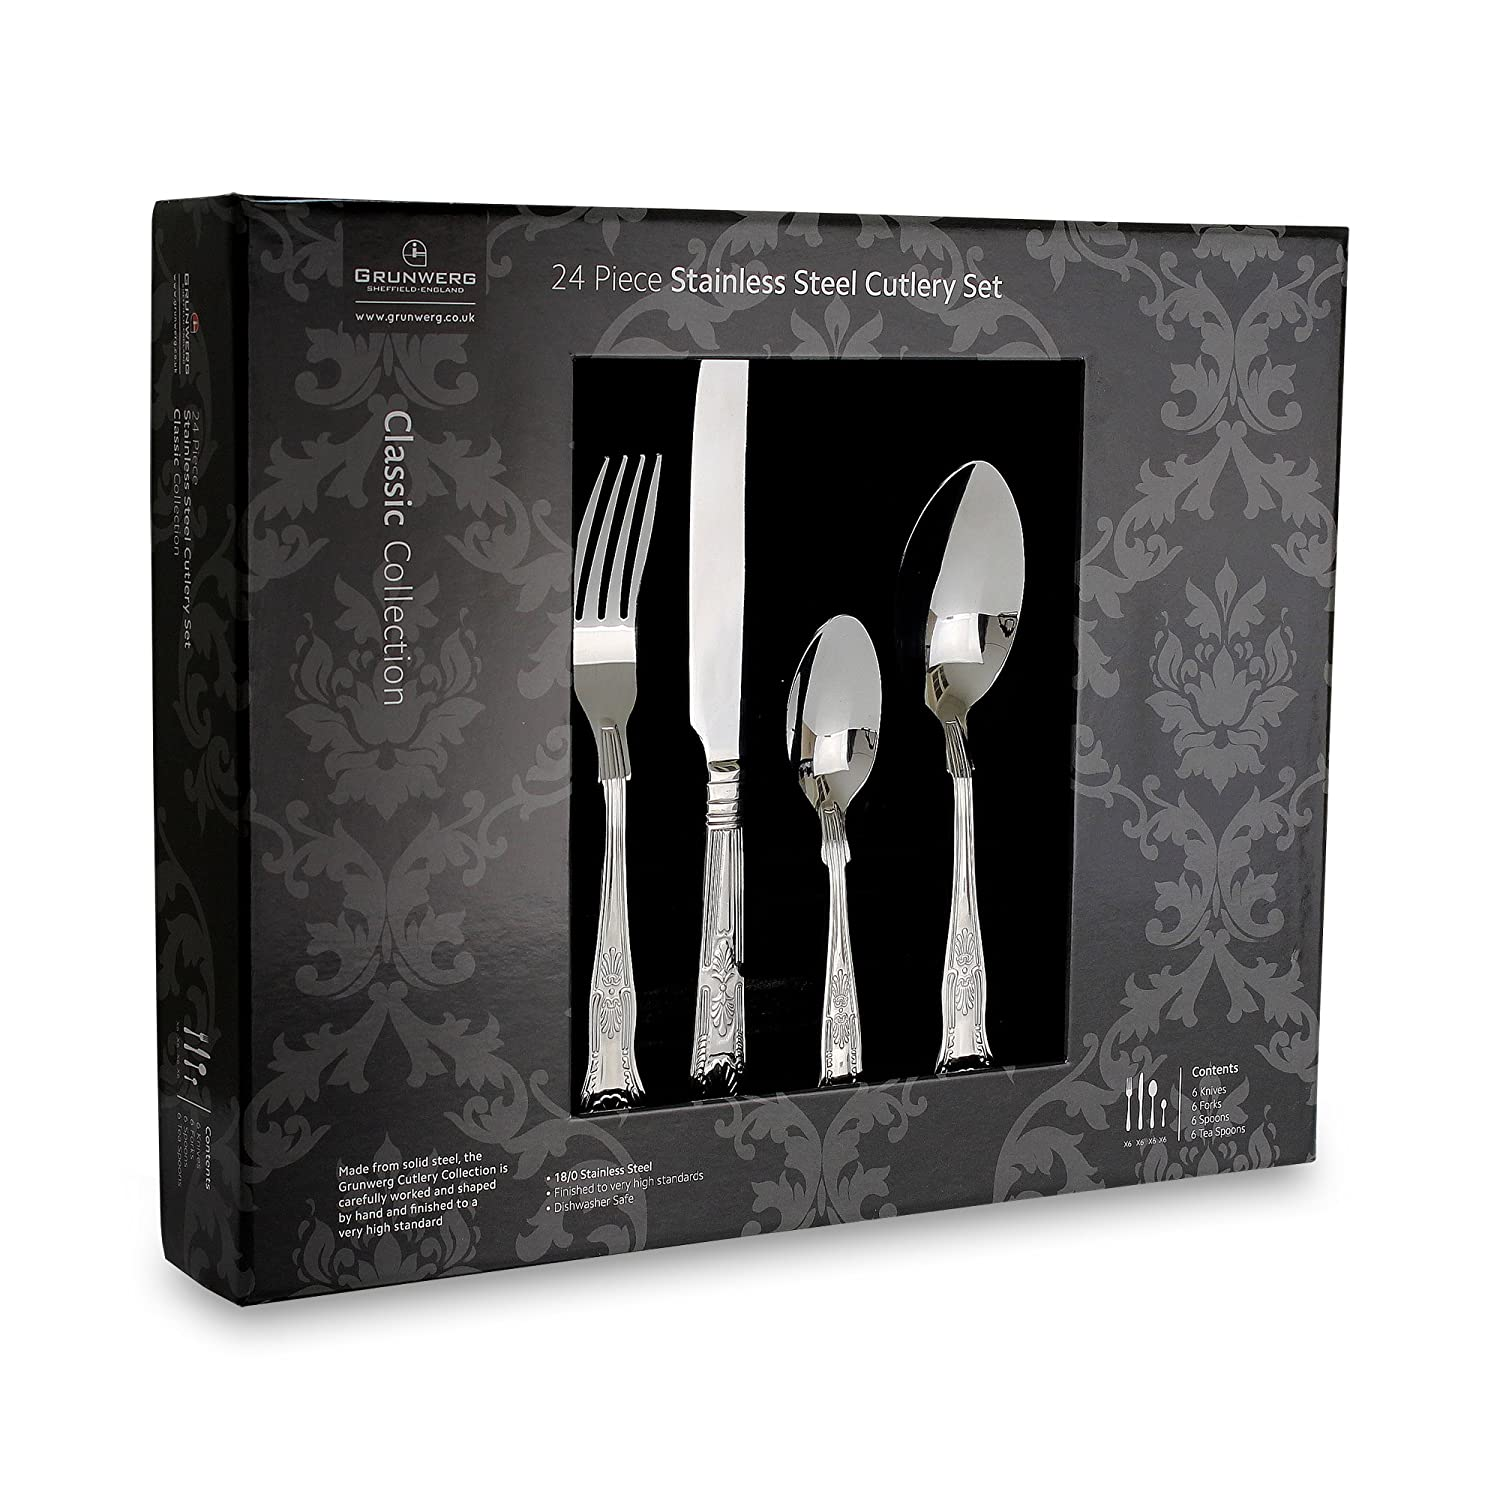 Grunwerg Classic Kings Pattern 24 Piece Cutlery Set, 18/0 Stainless Steel, Mirror Finish - Gift Boxed 24BXKGR